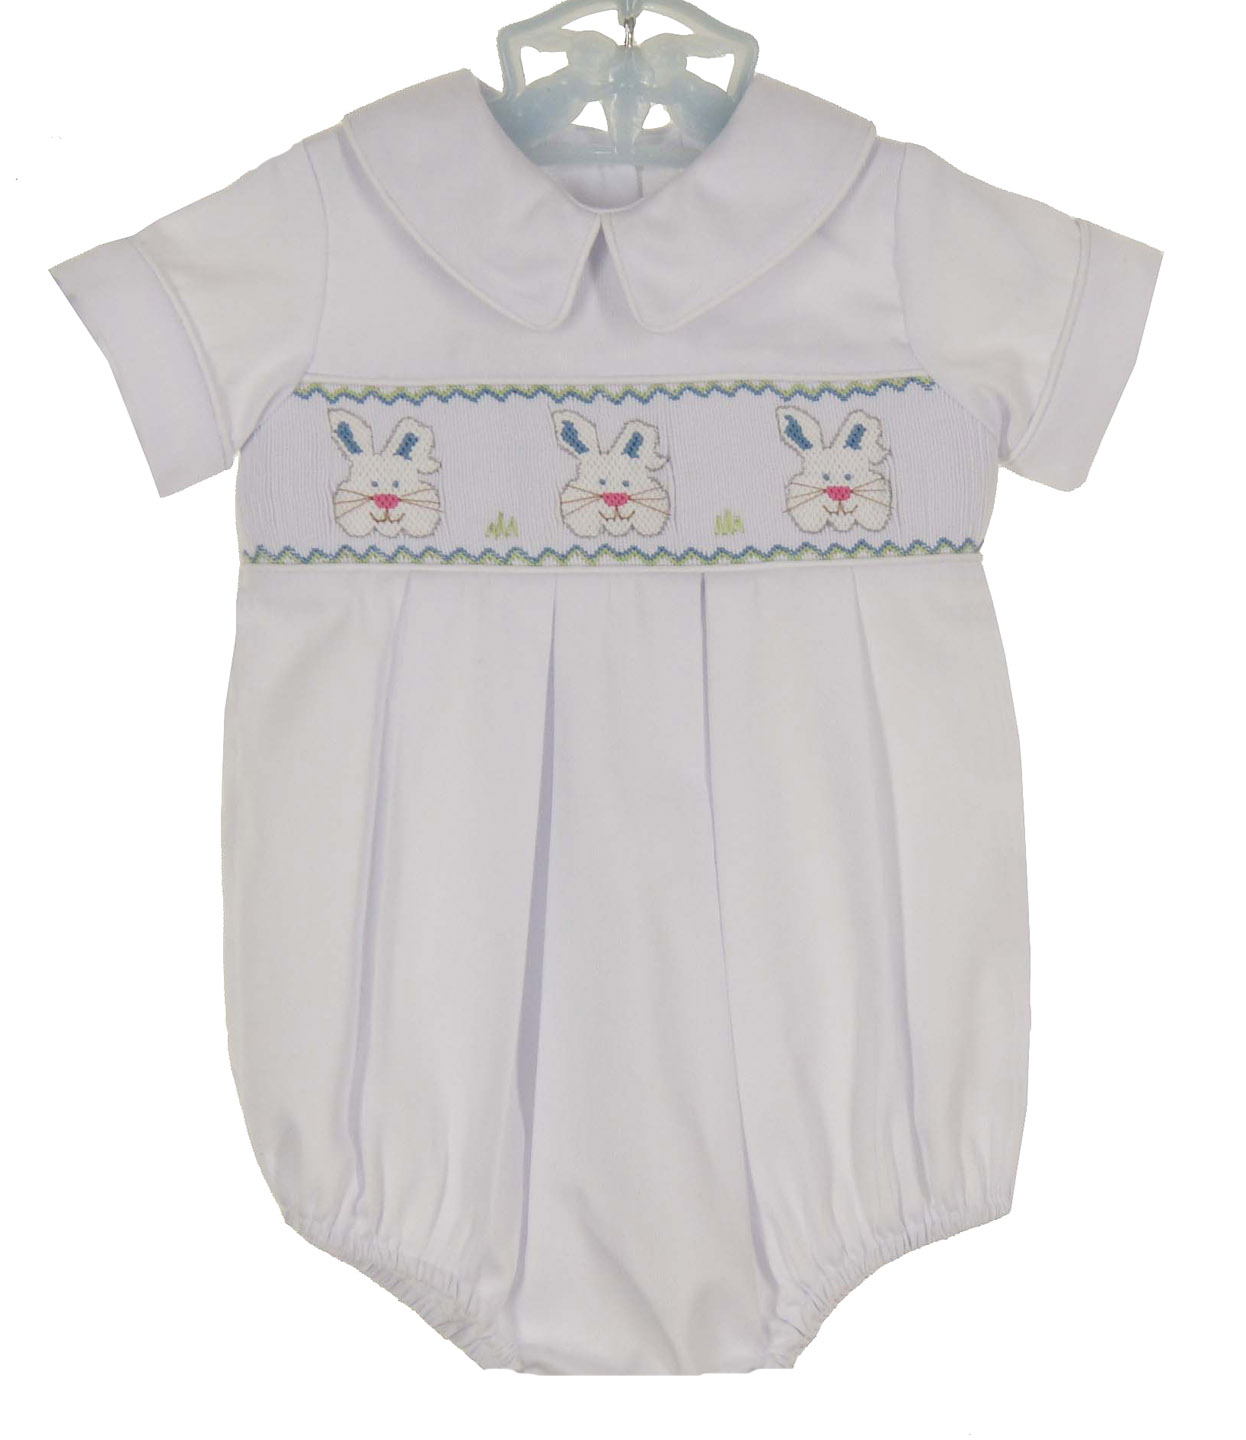 ac832cc95530 NEW Precious Kids White Smocked Romper with Blue and White Bunnies